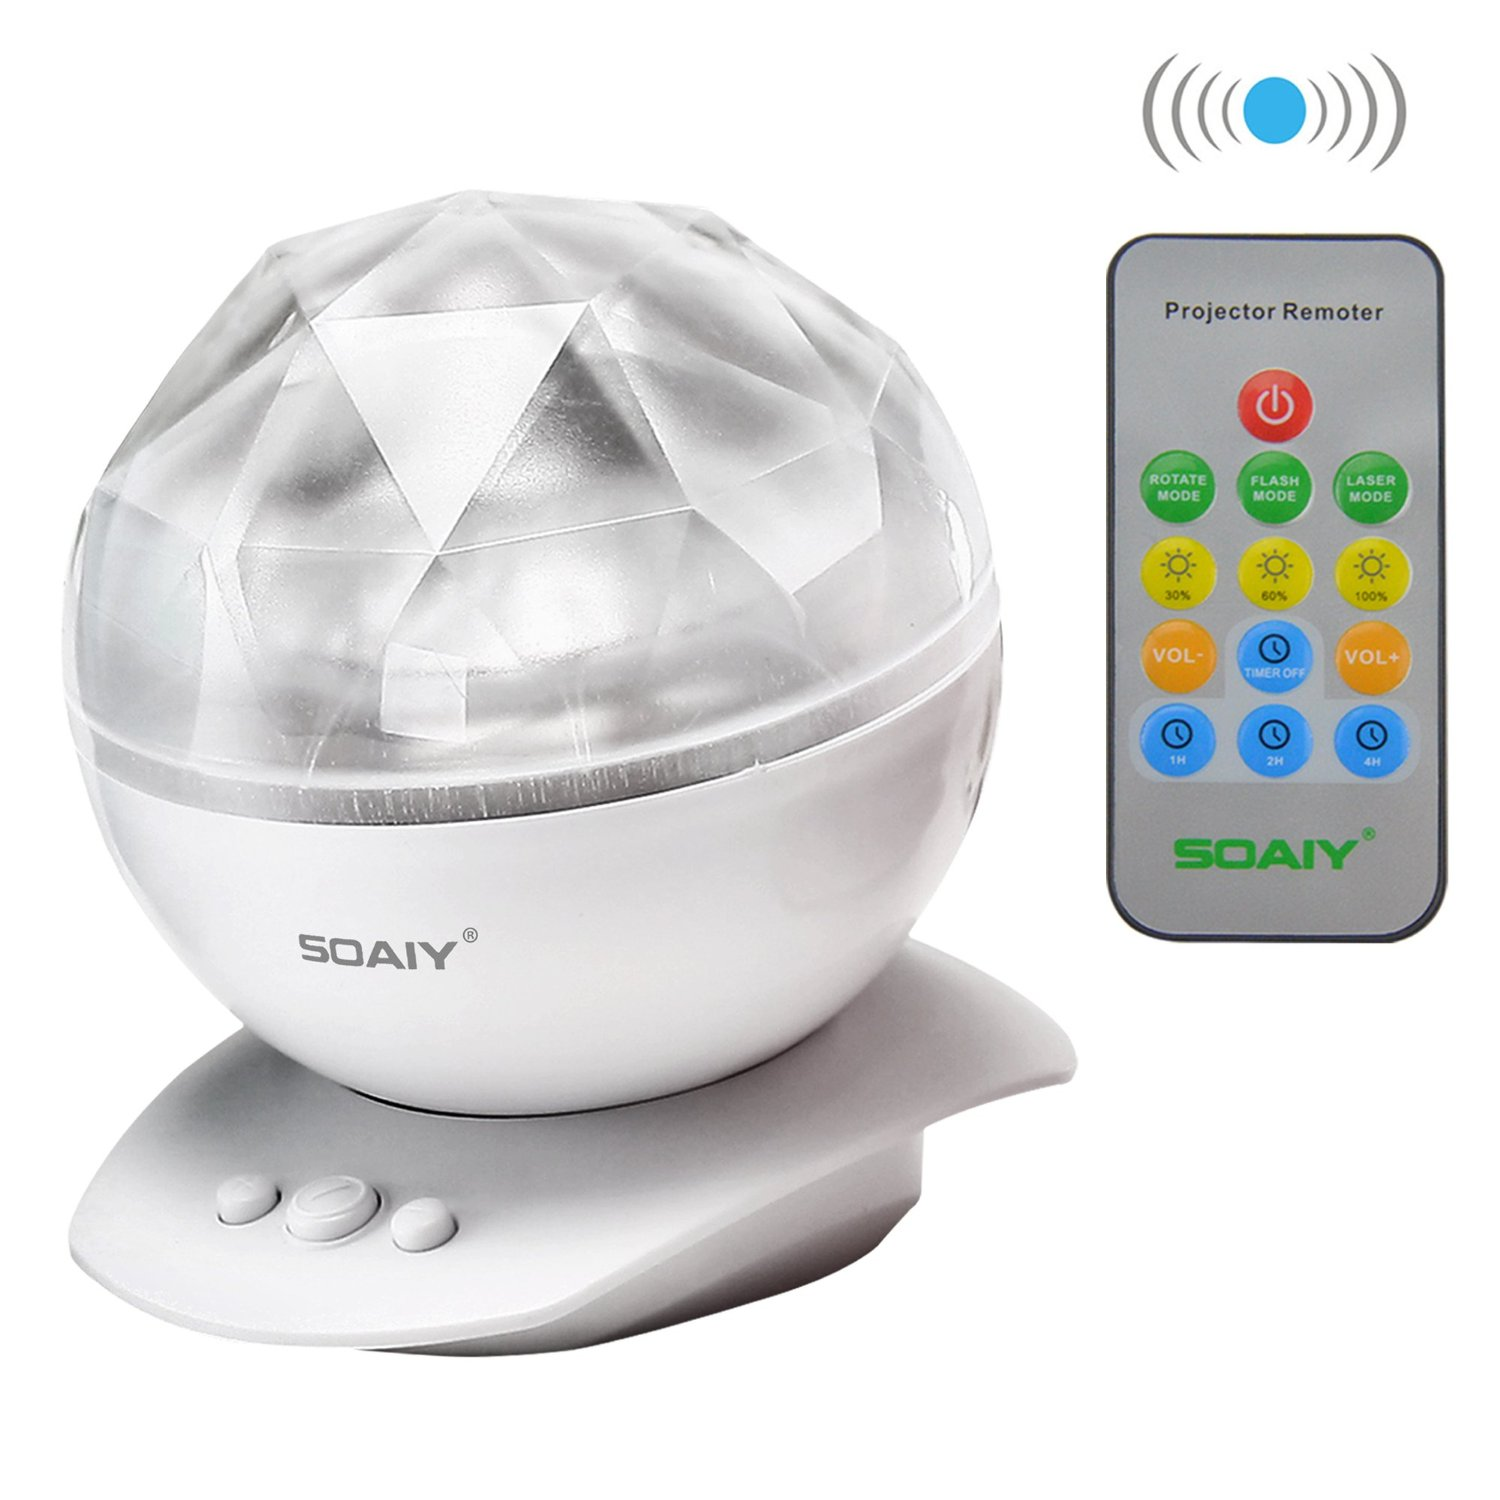 SOAIY LED Color Changing Aurora Master Wave Ocean Music Projector Lamp Night Light Soothing Relaxing USB Speaker with Remote, White, Thanksgiving Day Gift